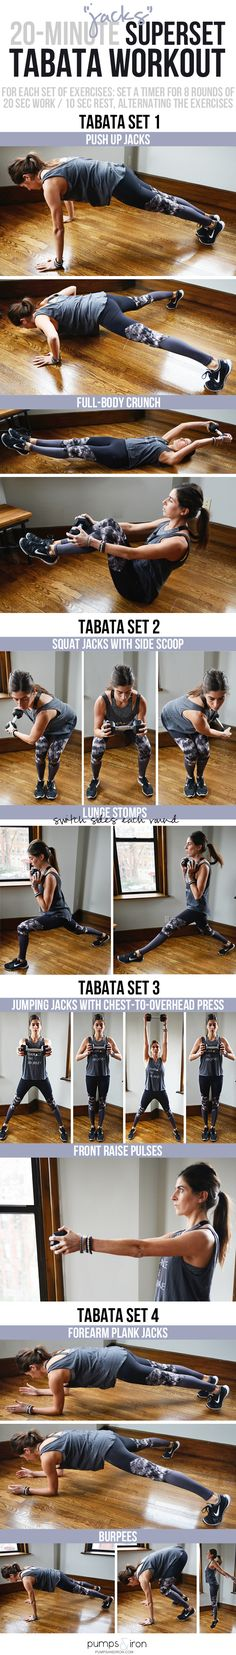 "Tabata ""Jacks"" Workout -- this tabata workout will take you 16 minutes in total. Each set of exercises includes a ""jack"" (jumping jack, plank jacks, squat jacks, etc.)"